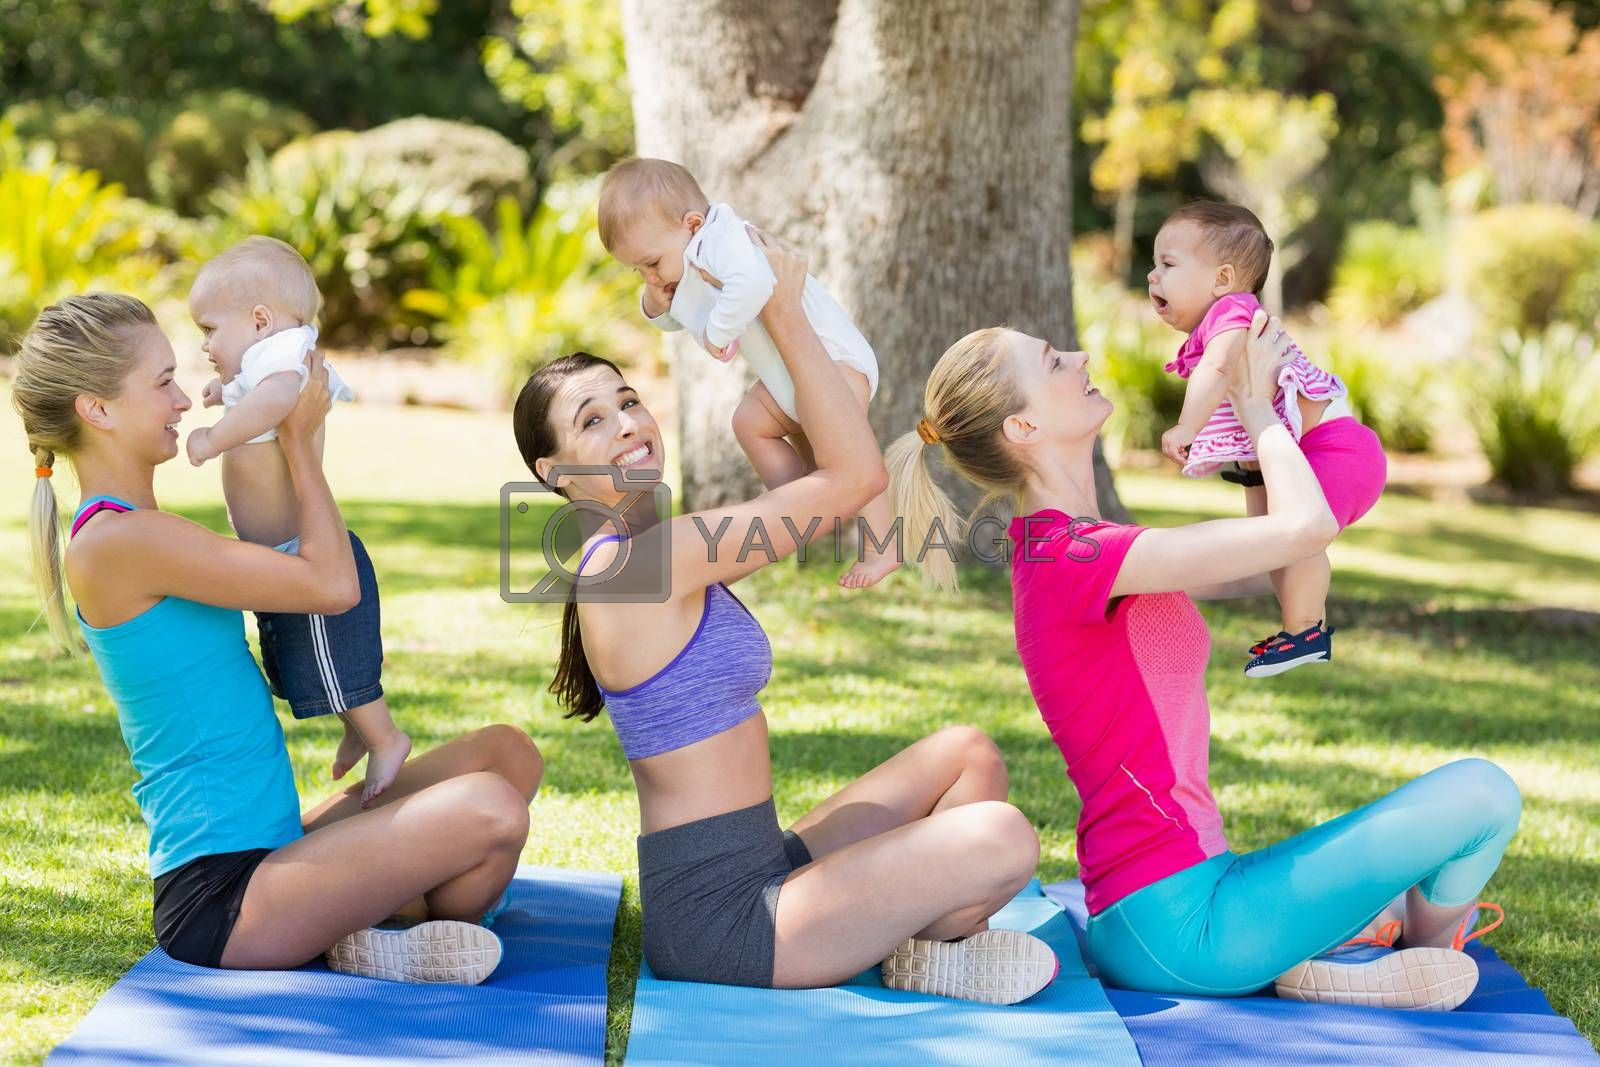 Women holding their babies while exercising by Wavebreakmedia